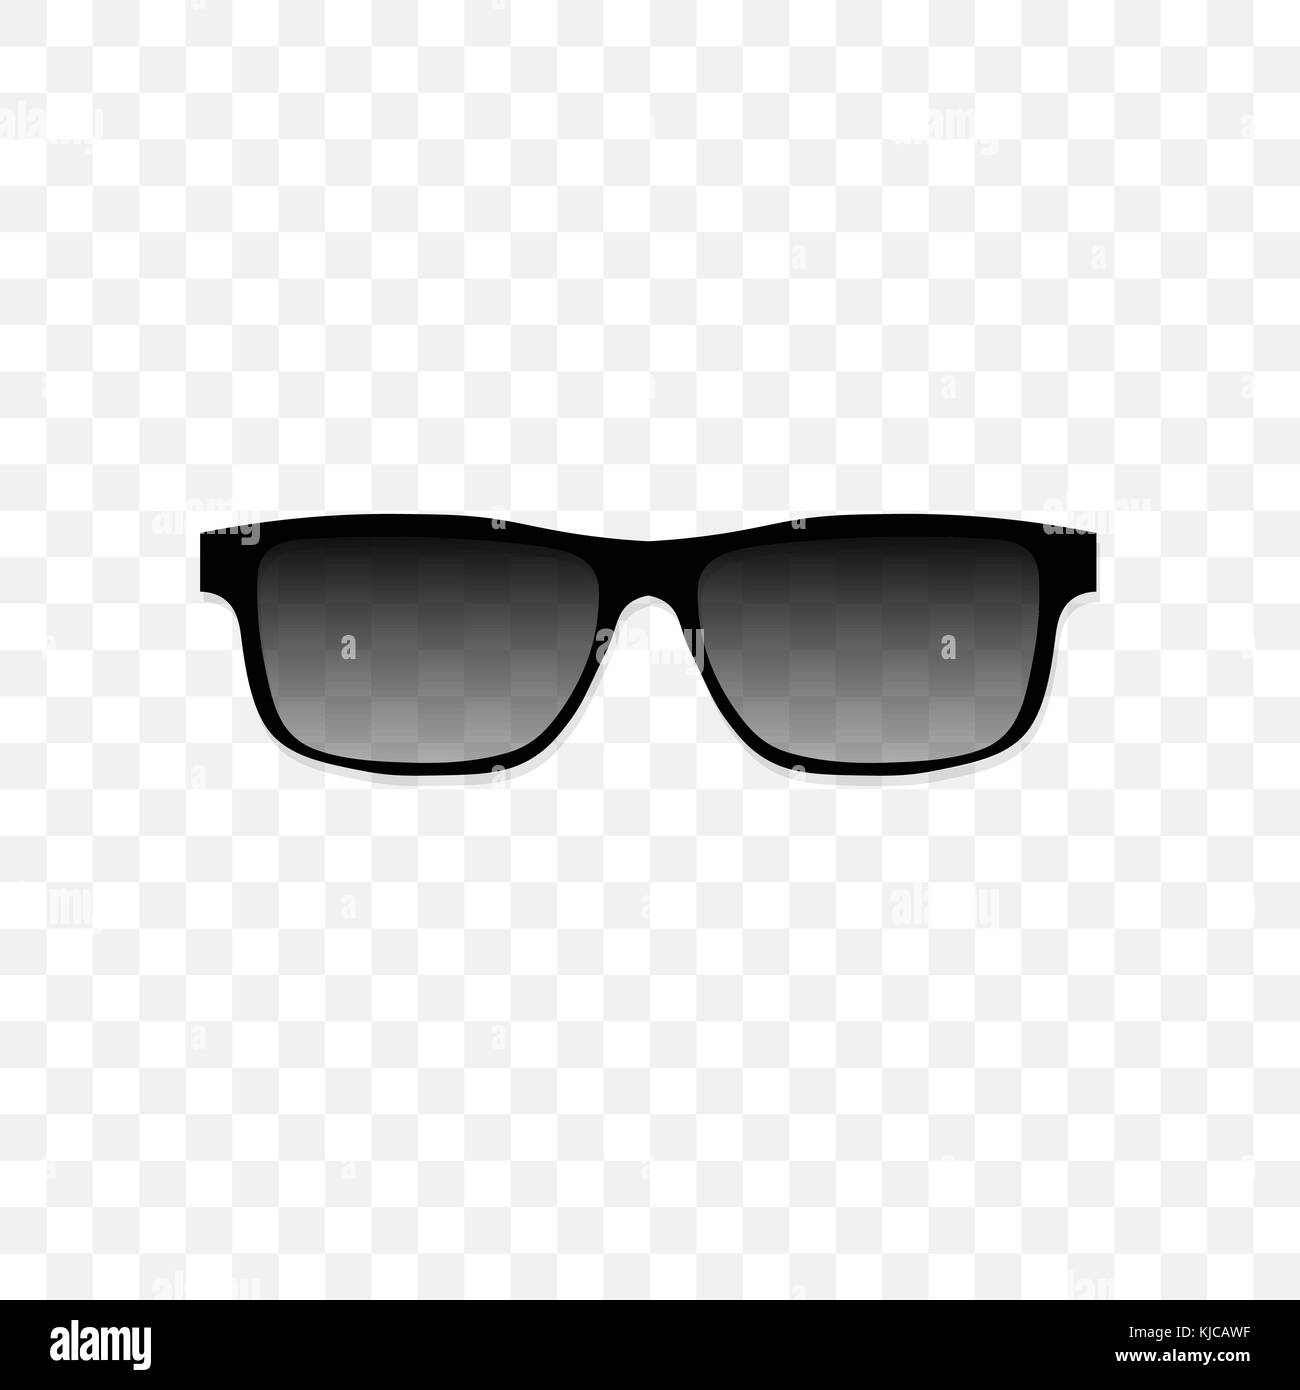 81a2076953 Realistic sunglasses with a translucent black glass on a transparent  background. Protection from sun and ultraviolet rays. Fashion accessory  vector ...